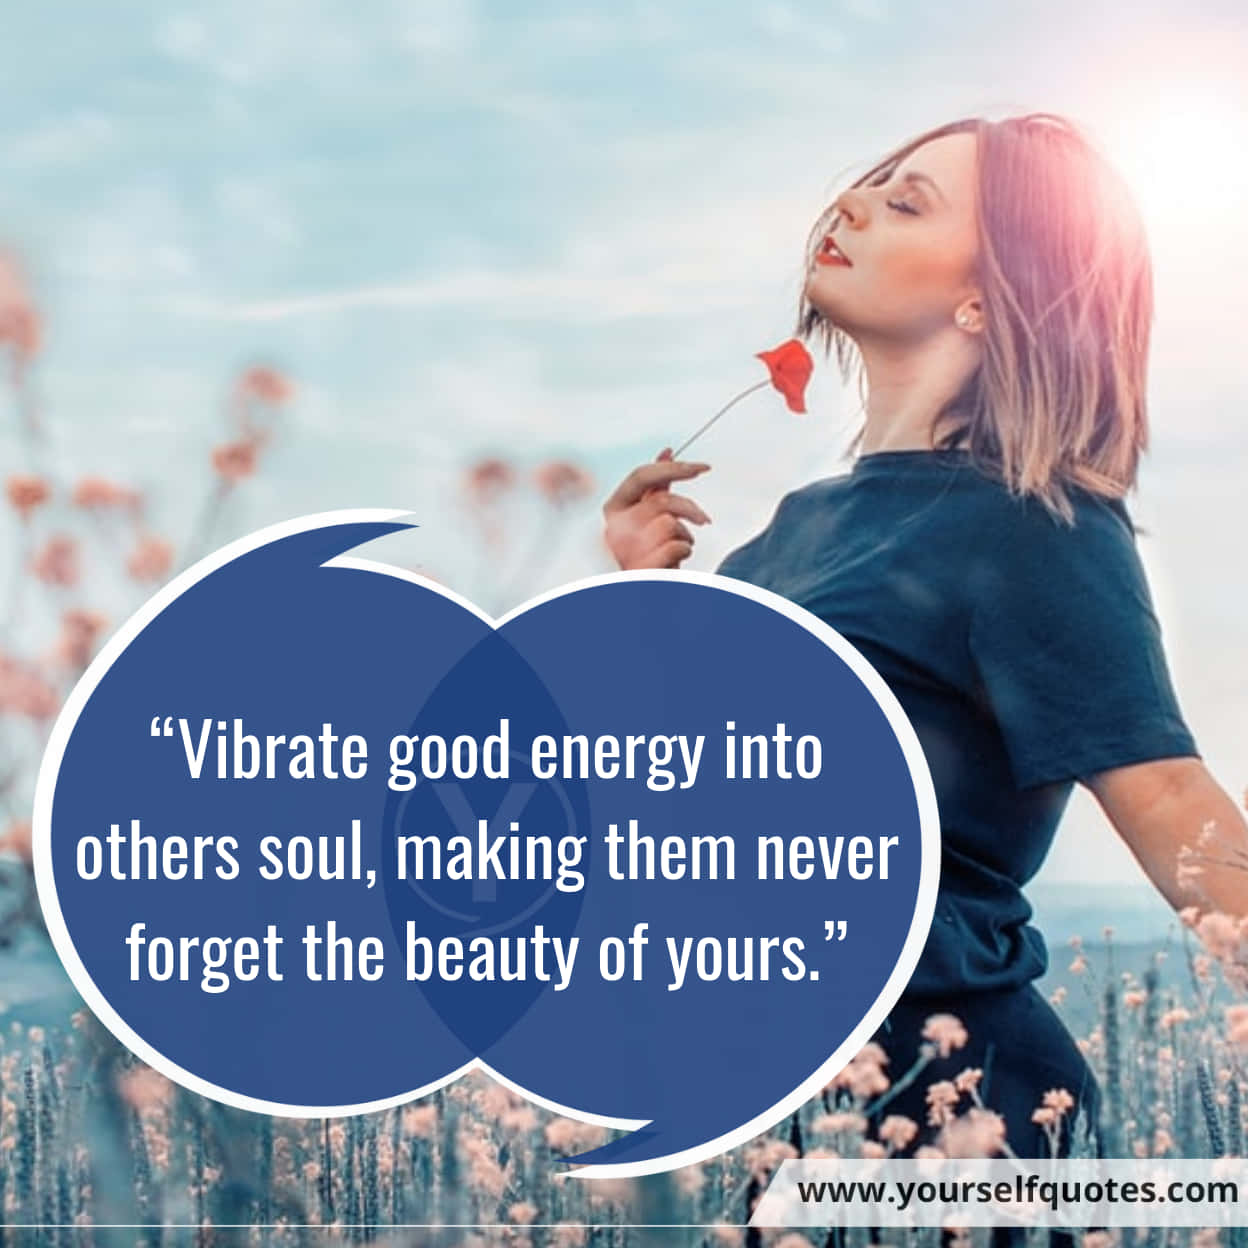 Positive Vibes Quotes For Feel Better